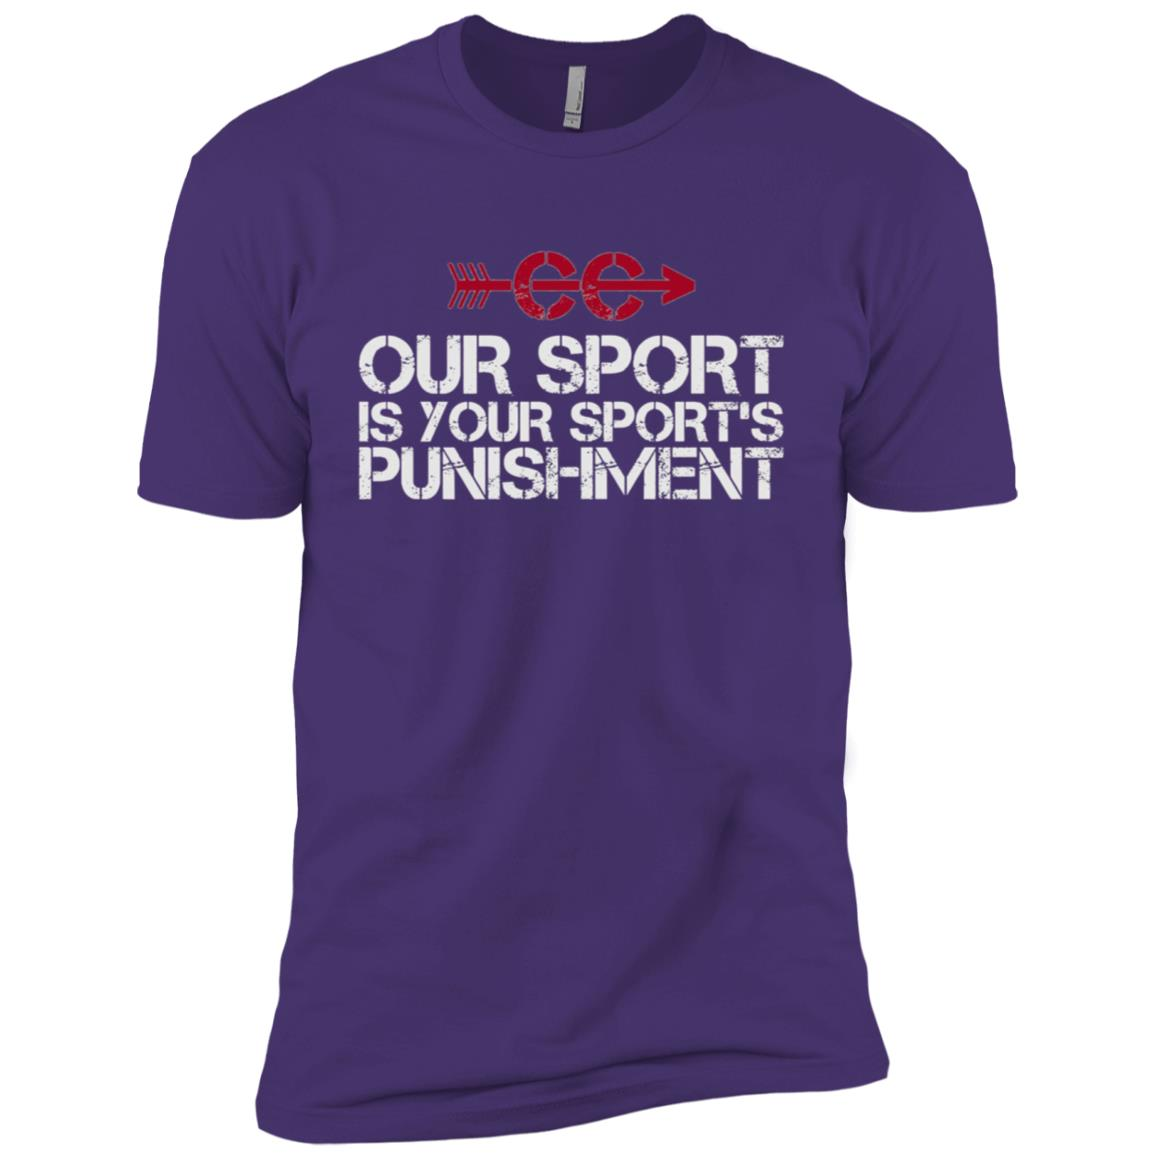 Cross Country Our Sport is your Sport's Punishment XC Run Men Short Sleeve T-Shirt